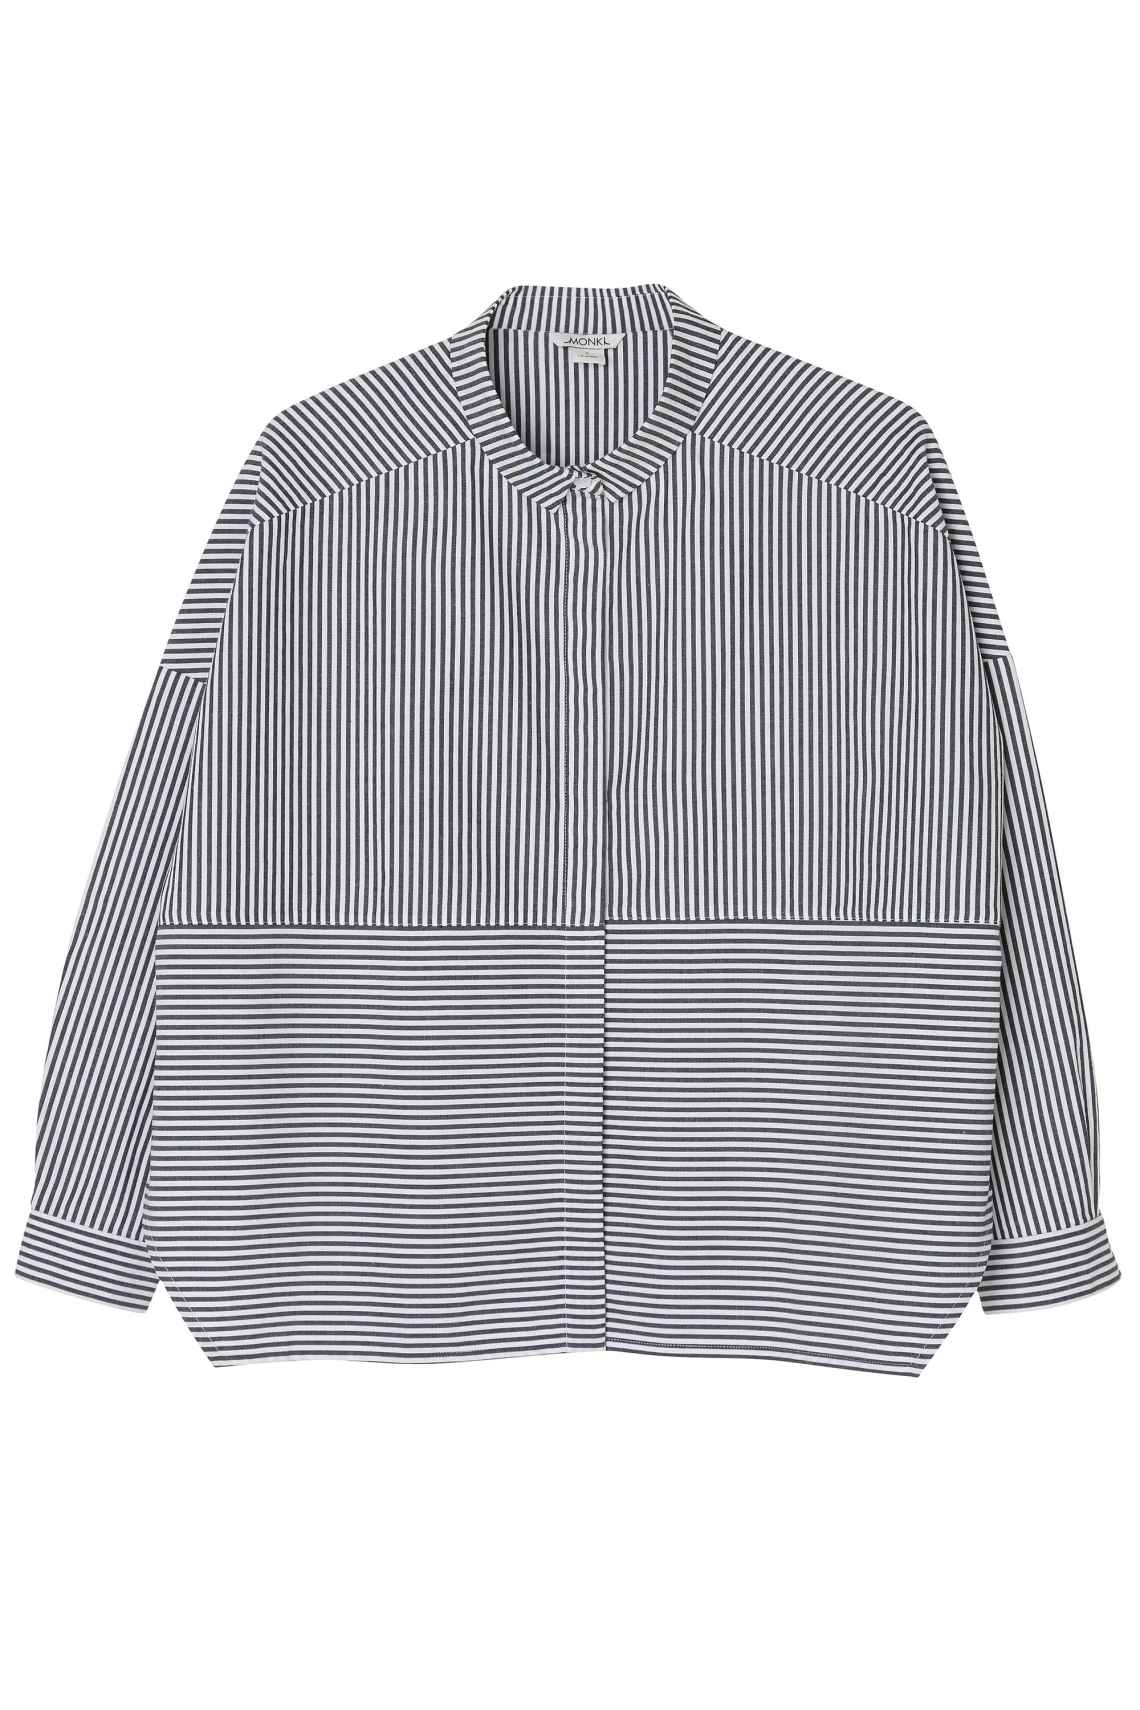 Monki - Paddy Shirt 20